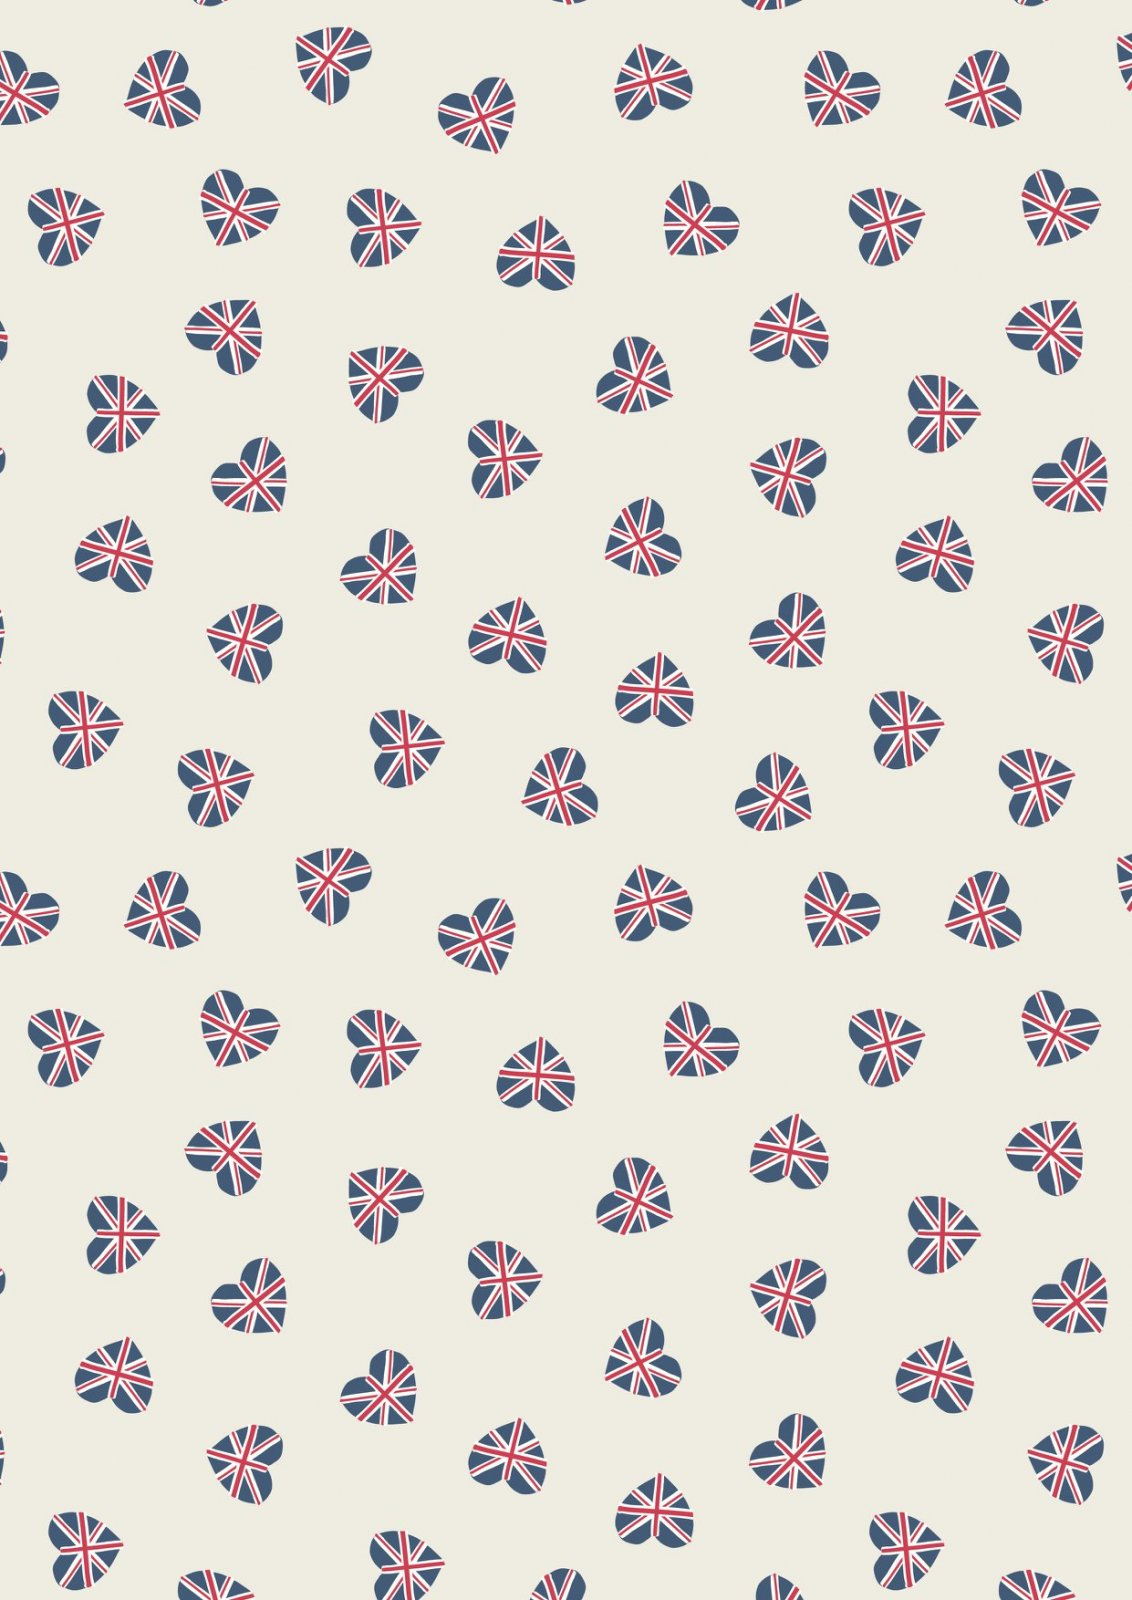 Britannia - Union Jack Hearts on Cream